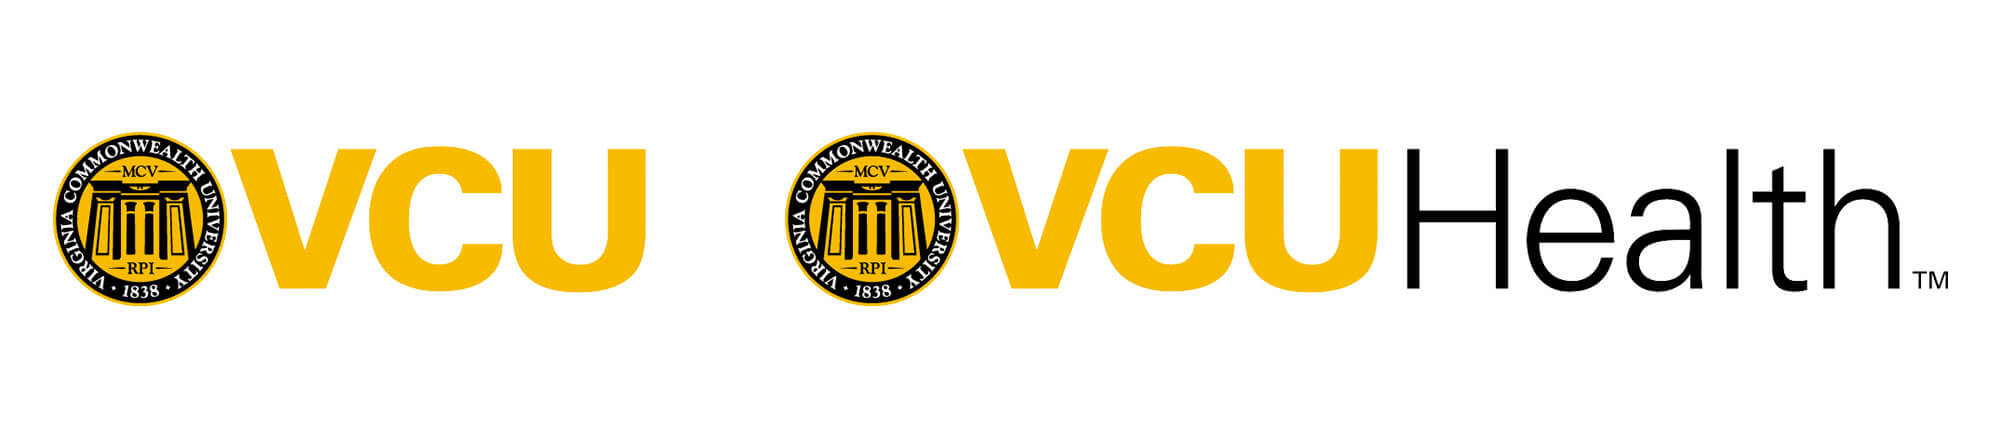 VCU and VCU Health logos